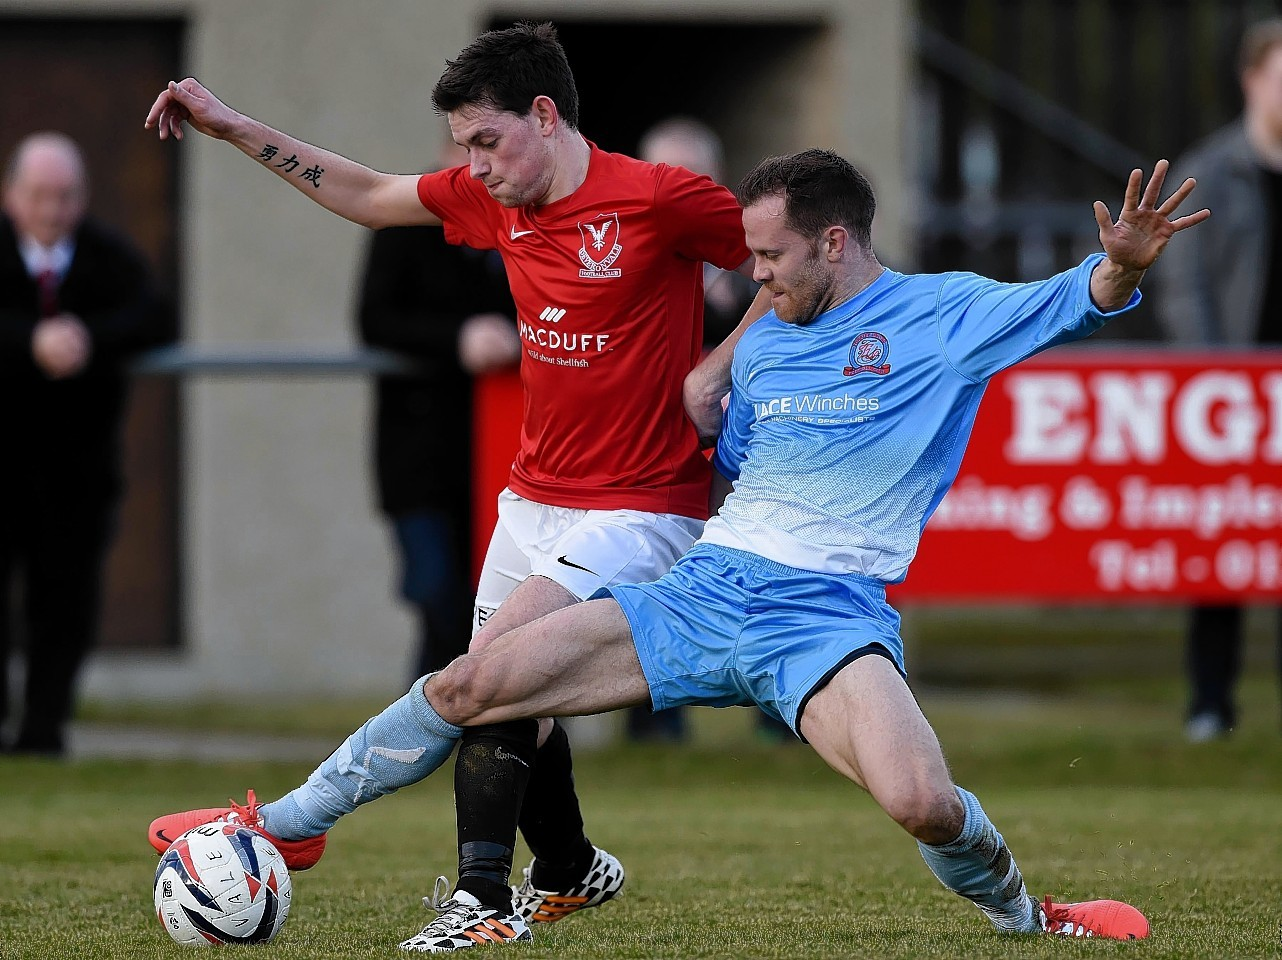 Colin Charlesworth in action (left)